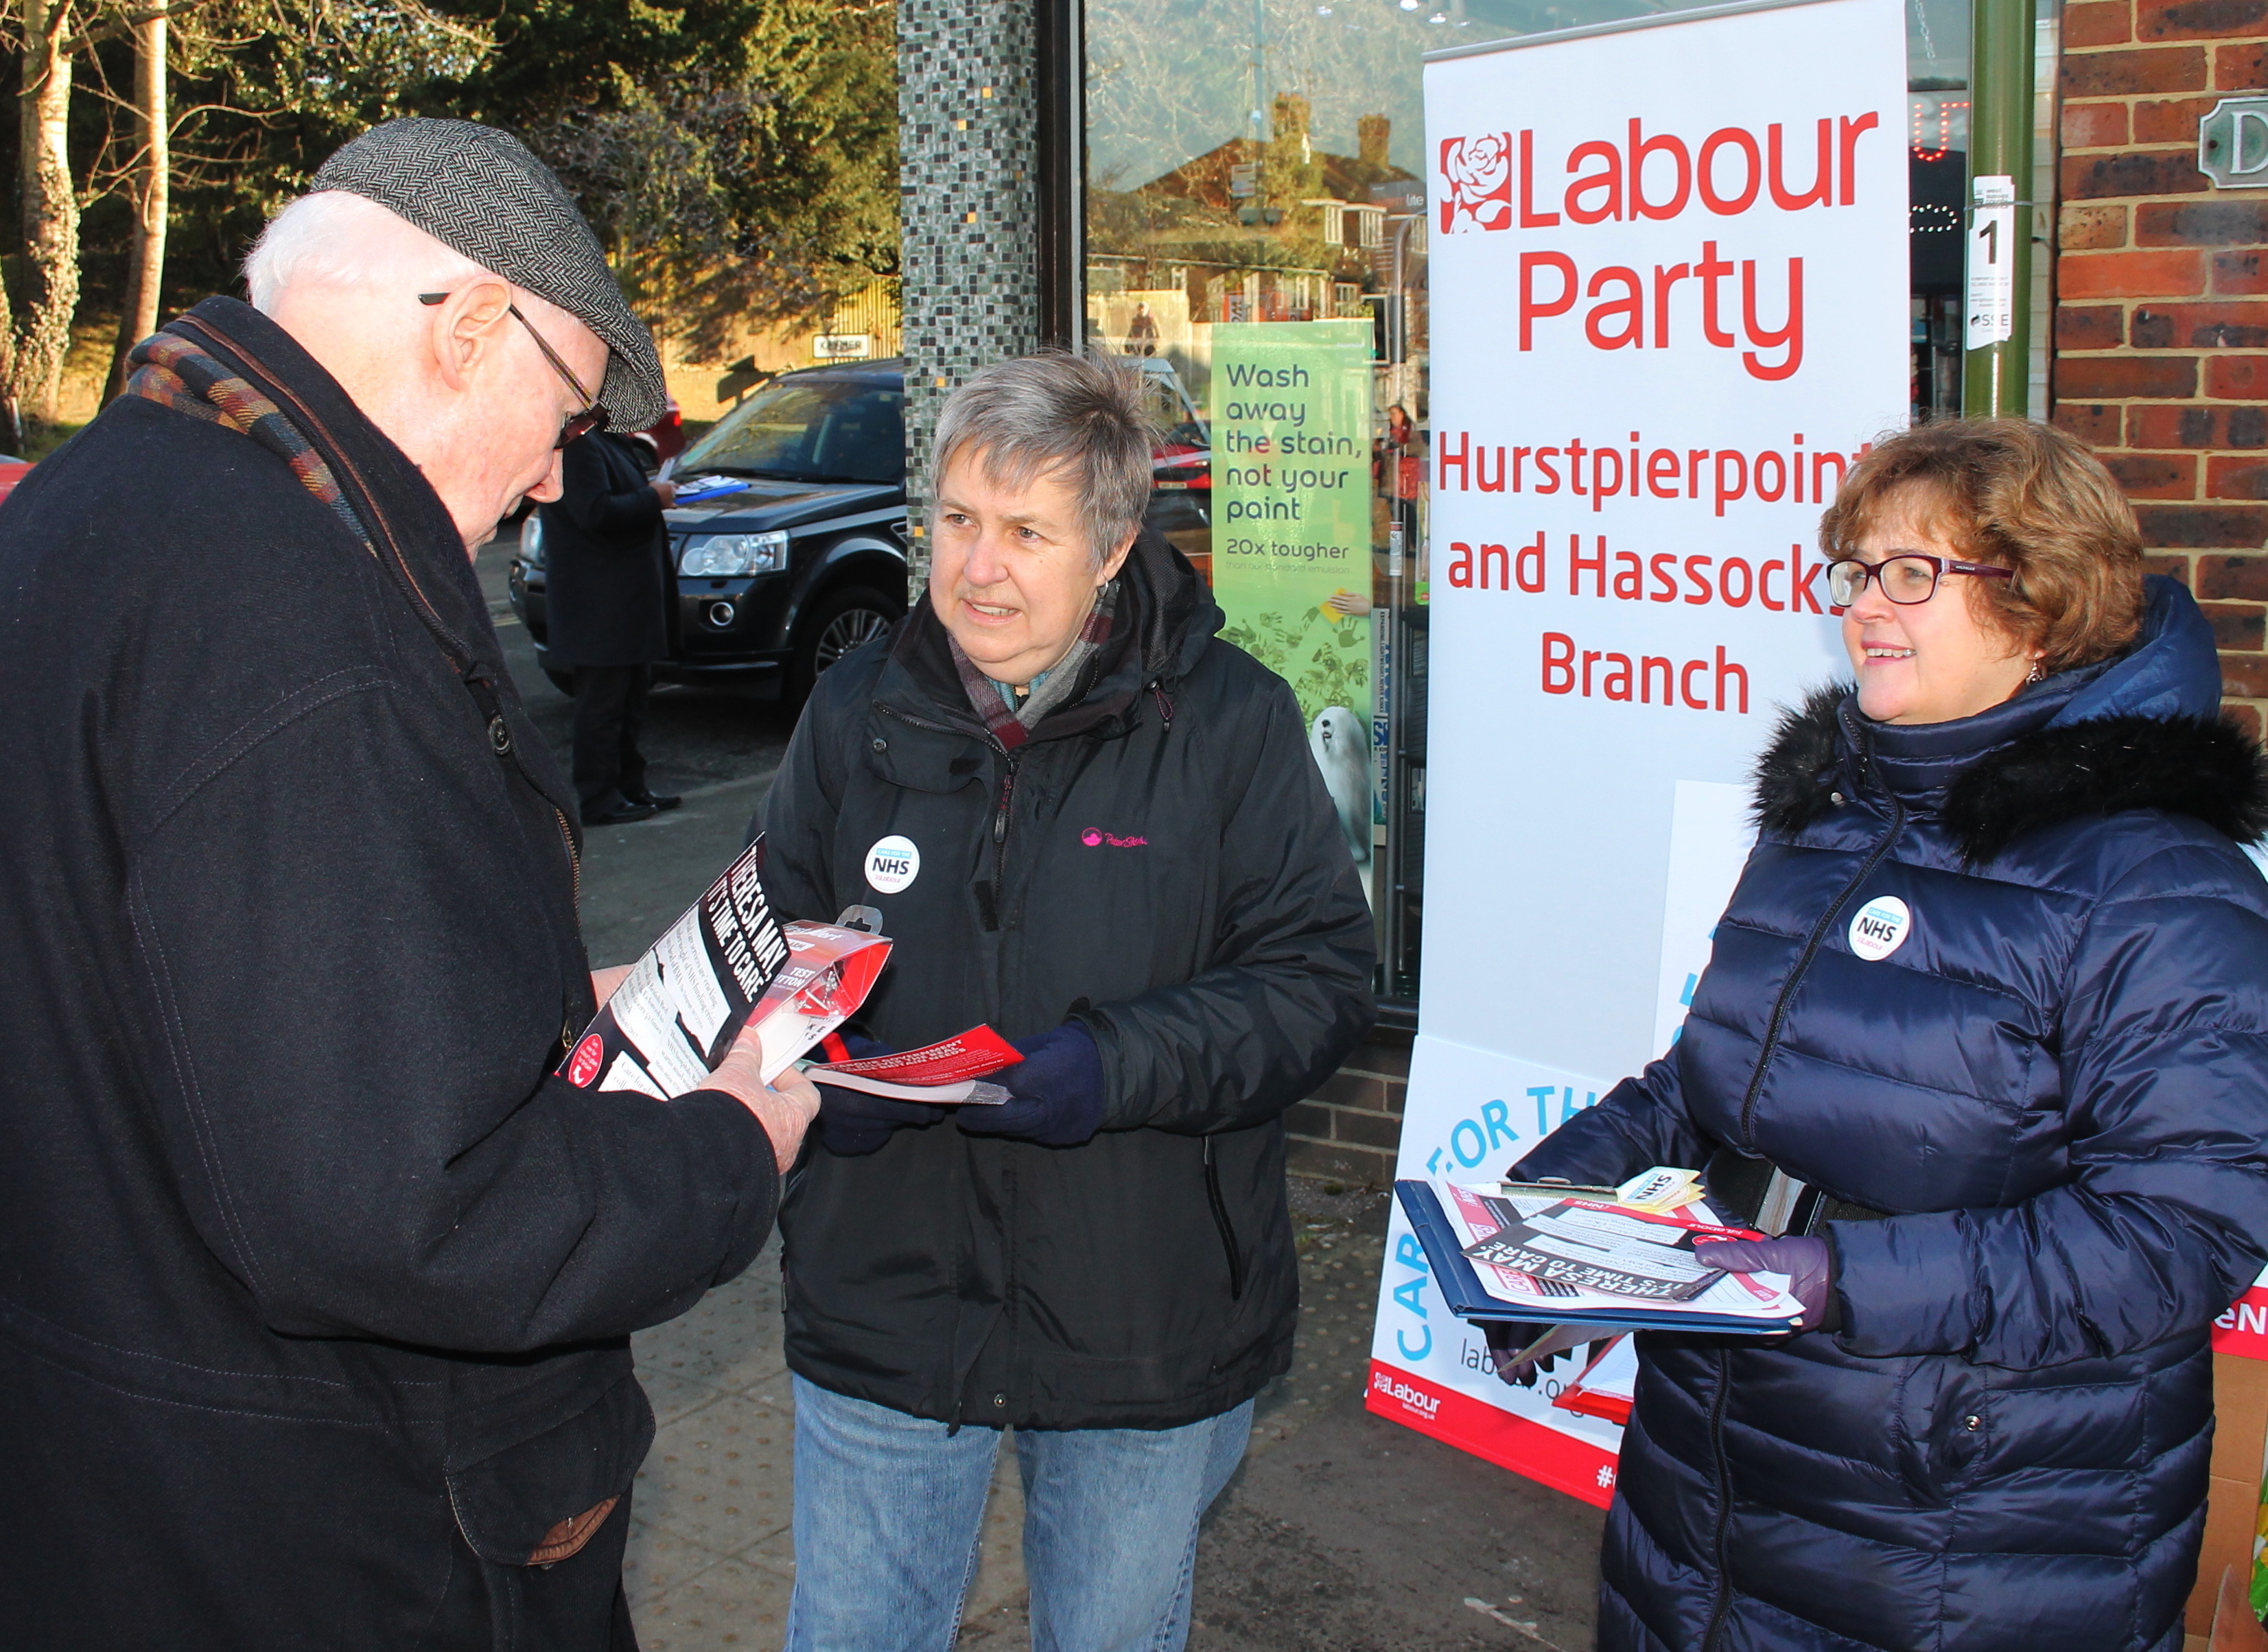 Signing_the_petition_in_Hassocks.jpg